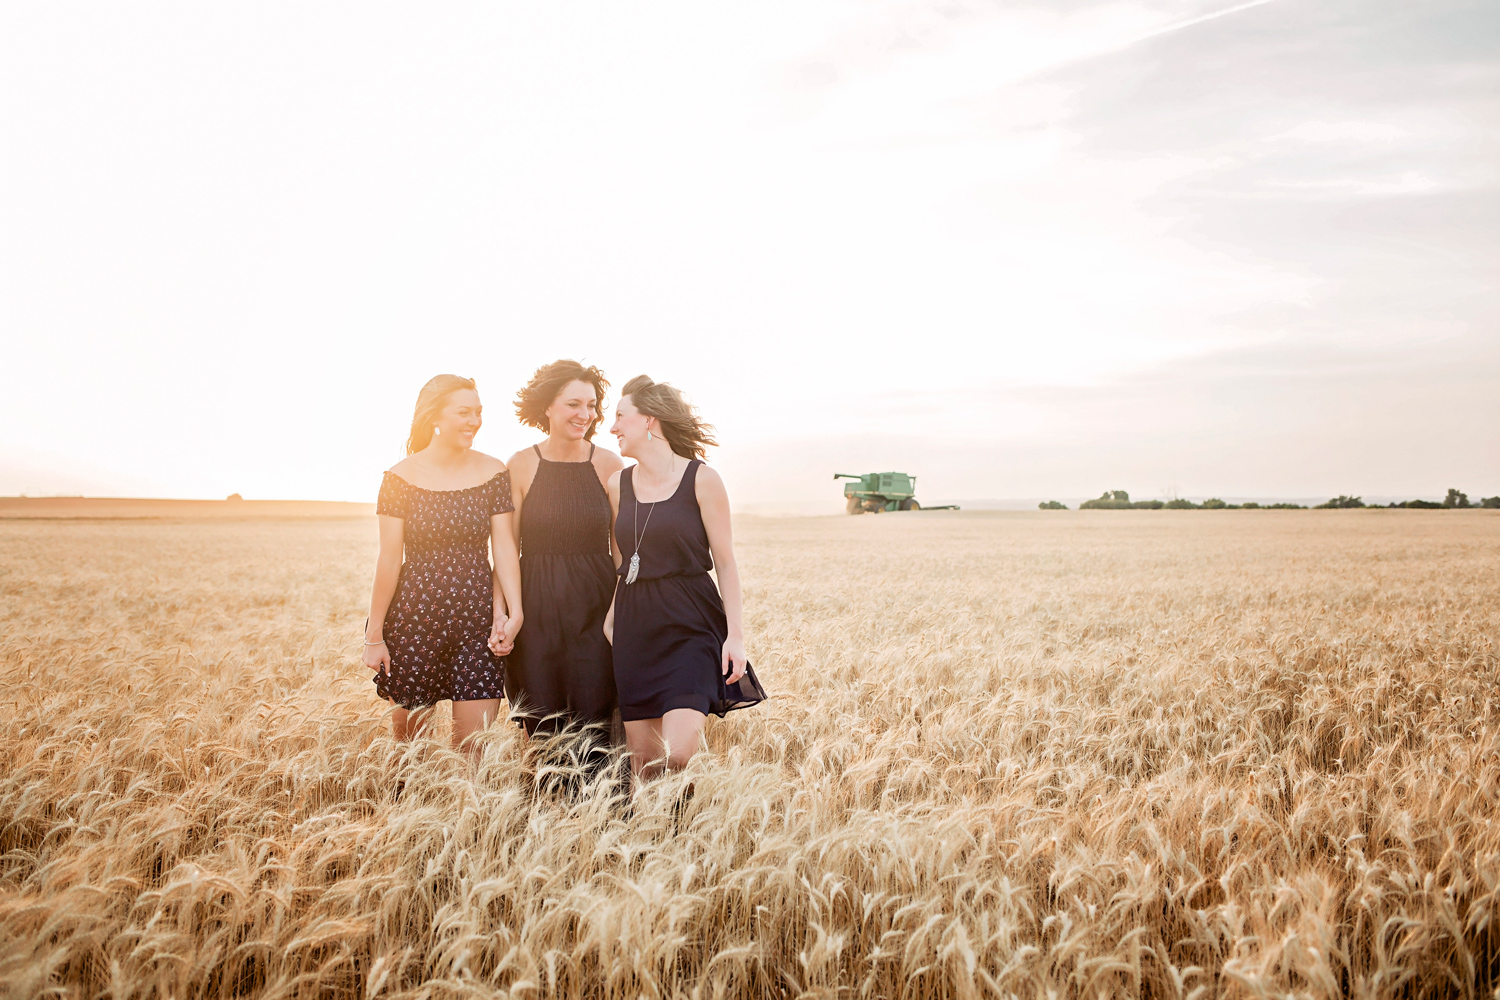 Family of three wearing blue dresses, walking in a wheat field in western Oklahoma by Amanda Lynn.